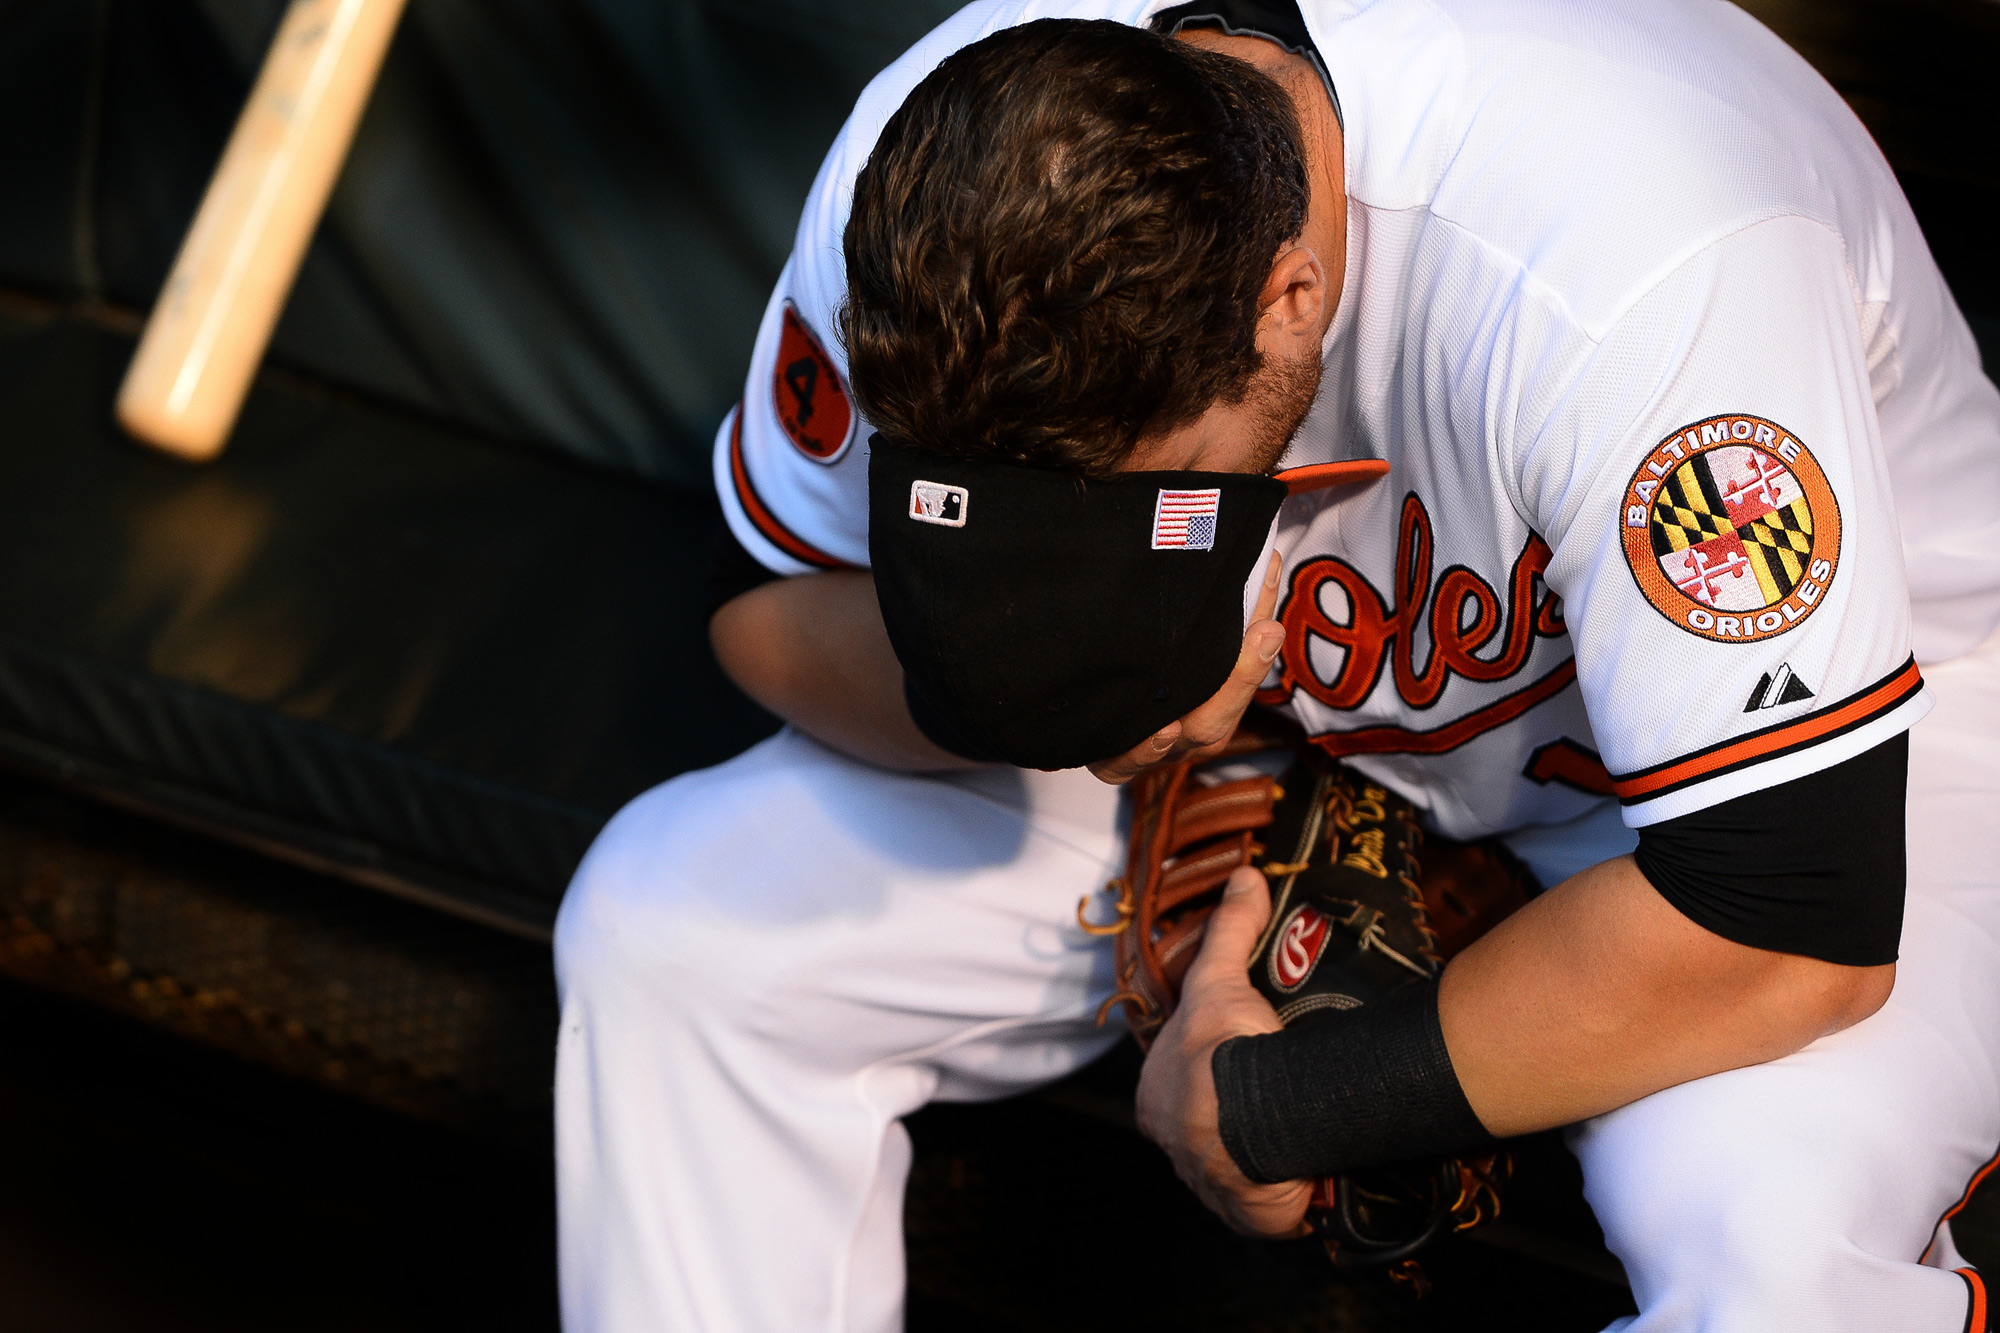 Baltimore Orioles first baseman Chris Davis removes his hat and covers  his face in thought while preparing for a home game against the New York  Yankees on Sept. 11, 2013 in Baltimore, Md. Davis put up 53 home runs in the 2013 season, a new franchise record.